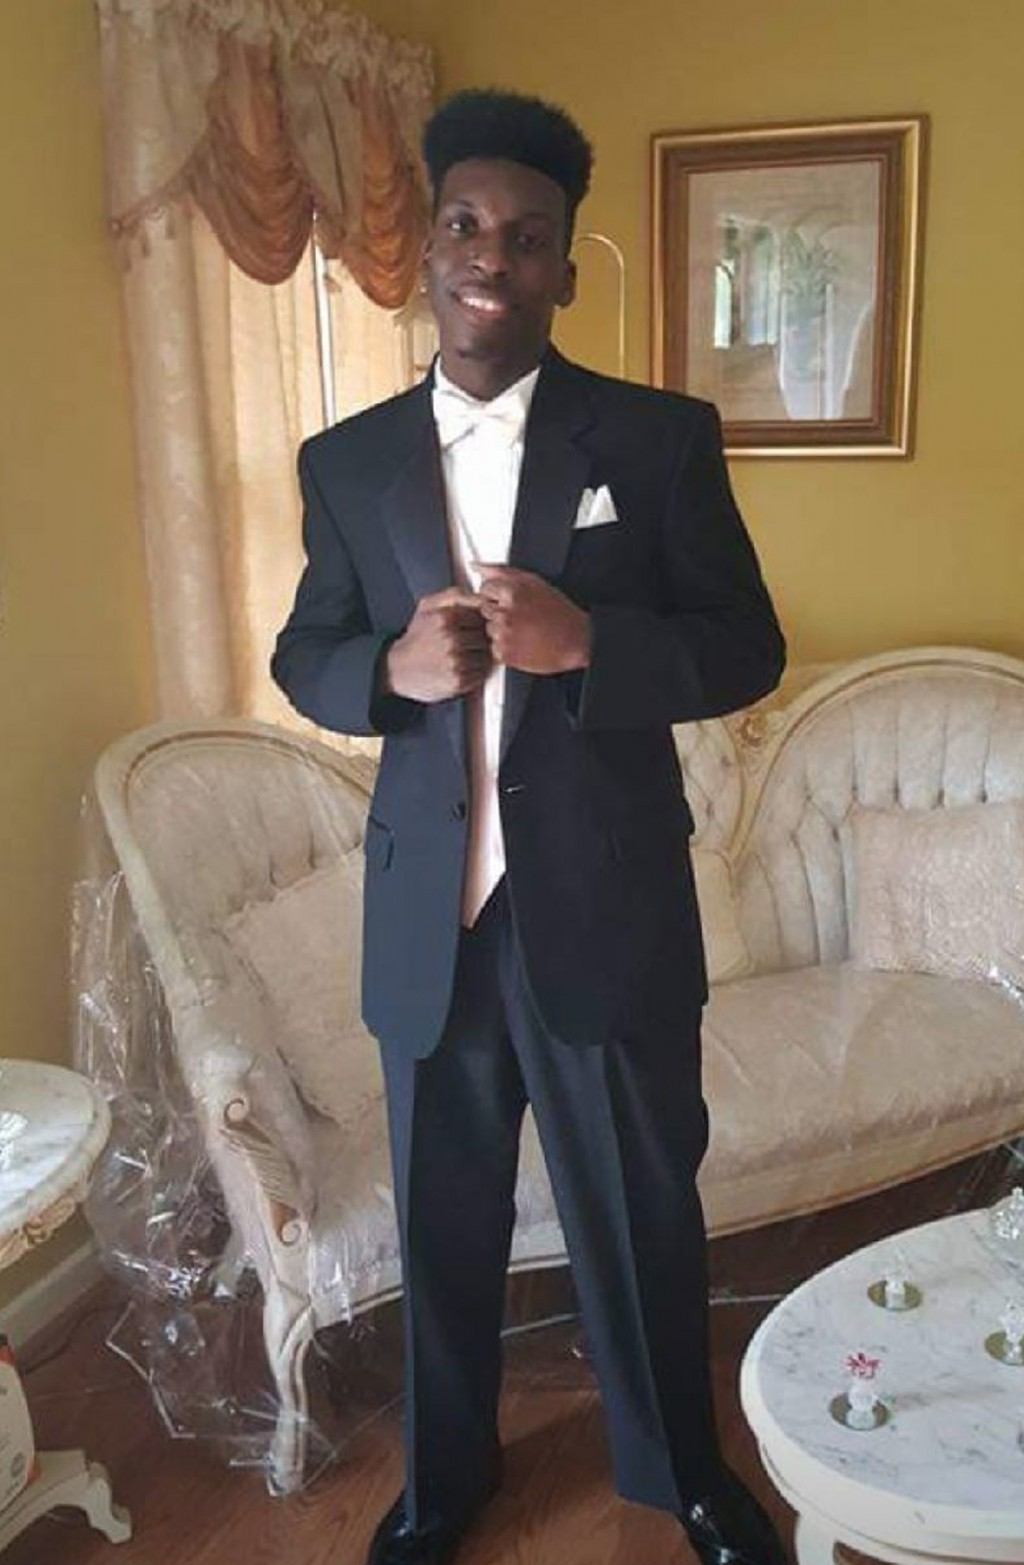 This undated image provided by Emantic Bradford, Sr. shows Emantic Fitzgerald Bradford, Jr., 21, posing for a picture at his father's home near Birmin...